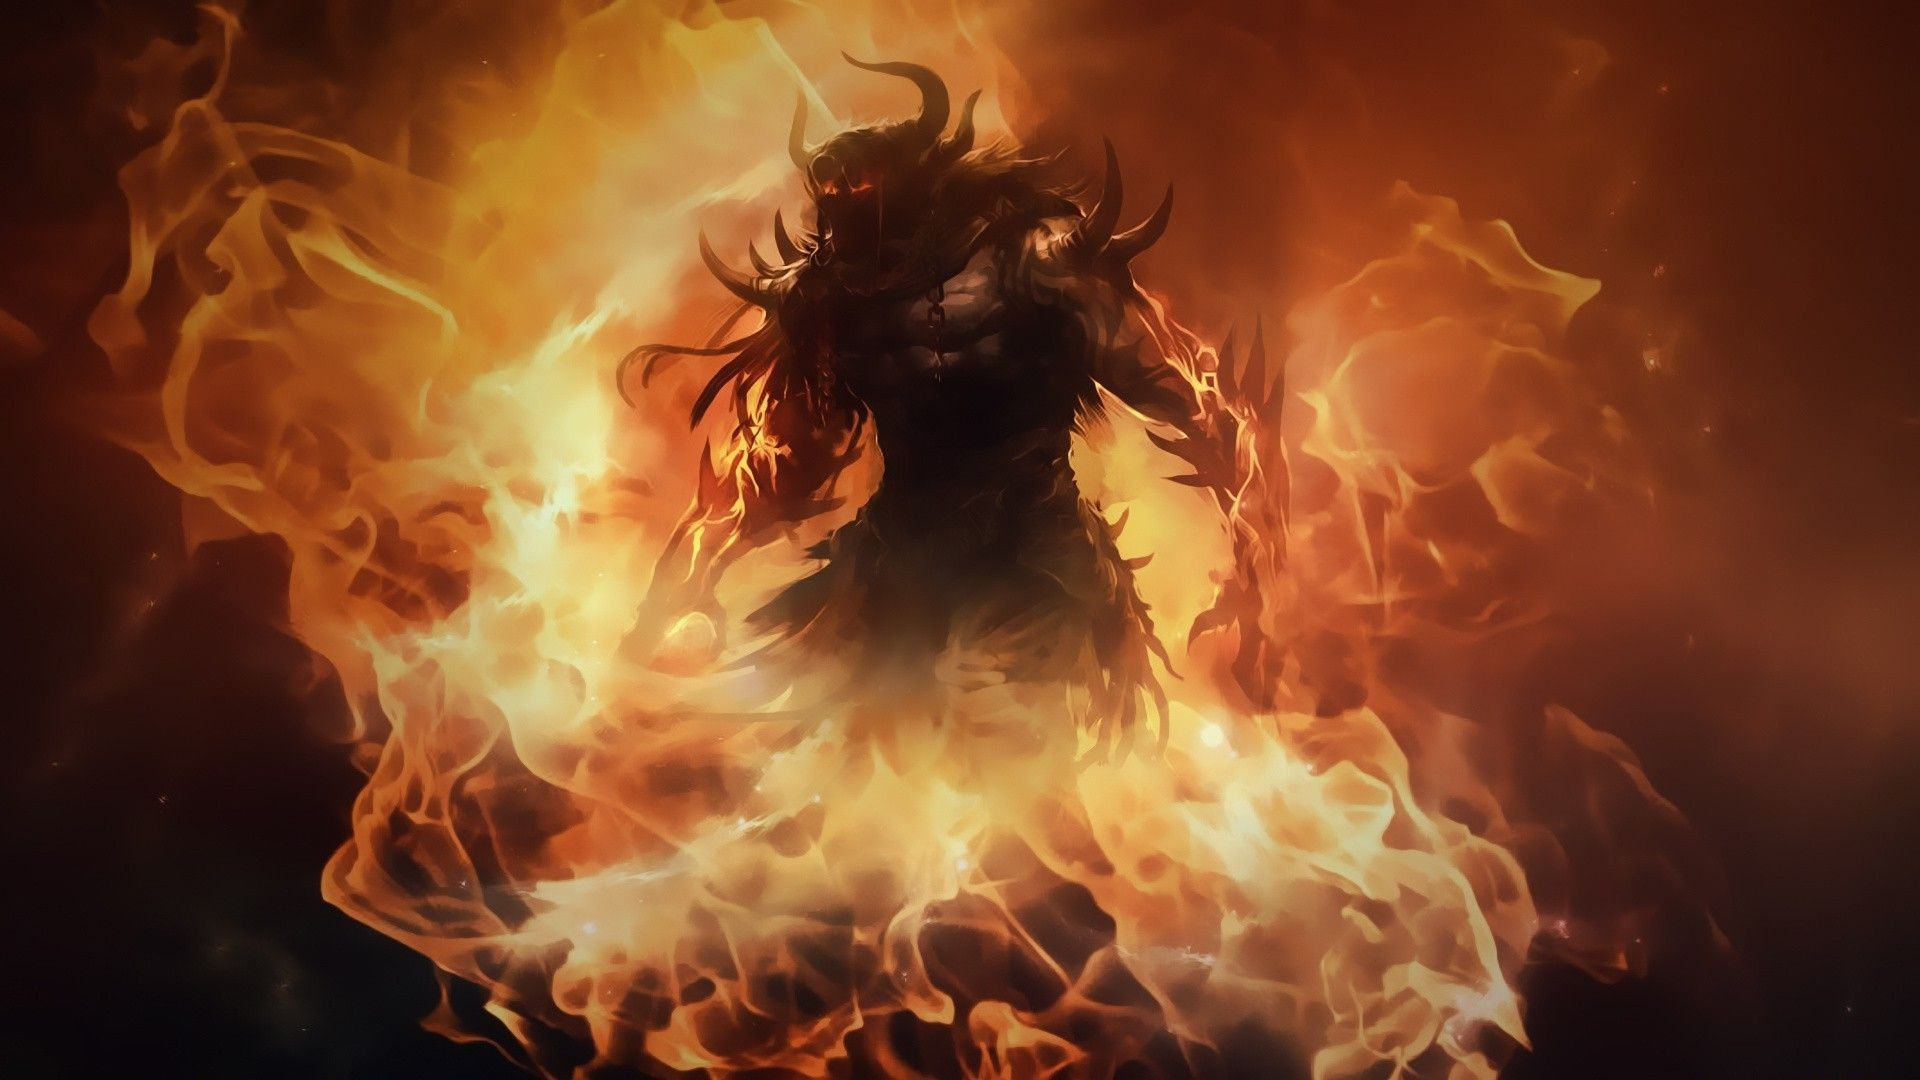 Diablo Wallpapers 73 Background Pictures